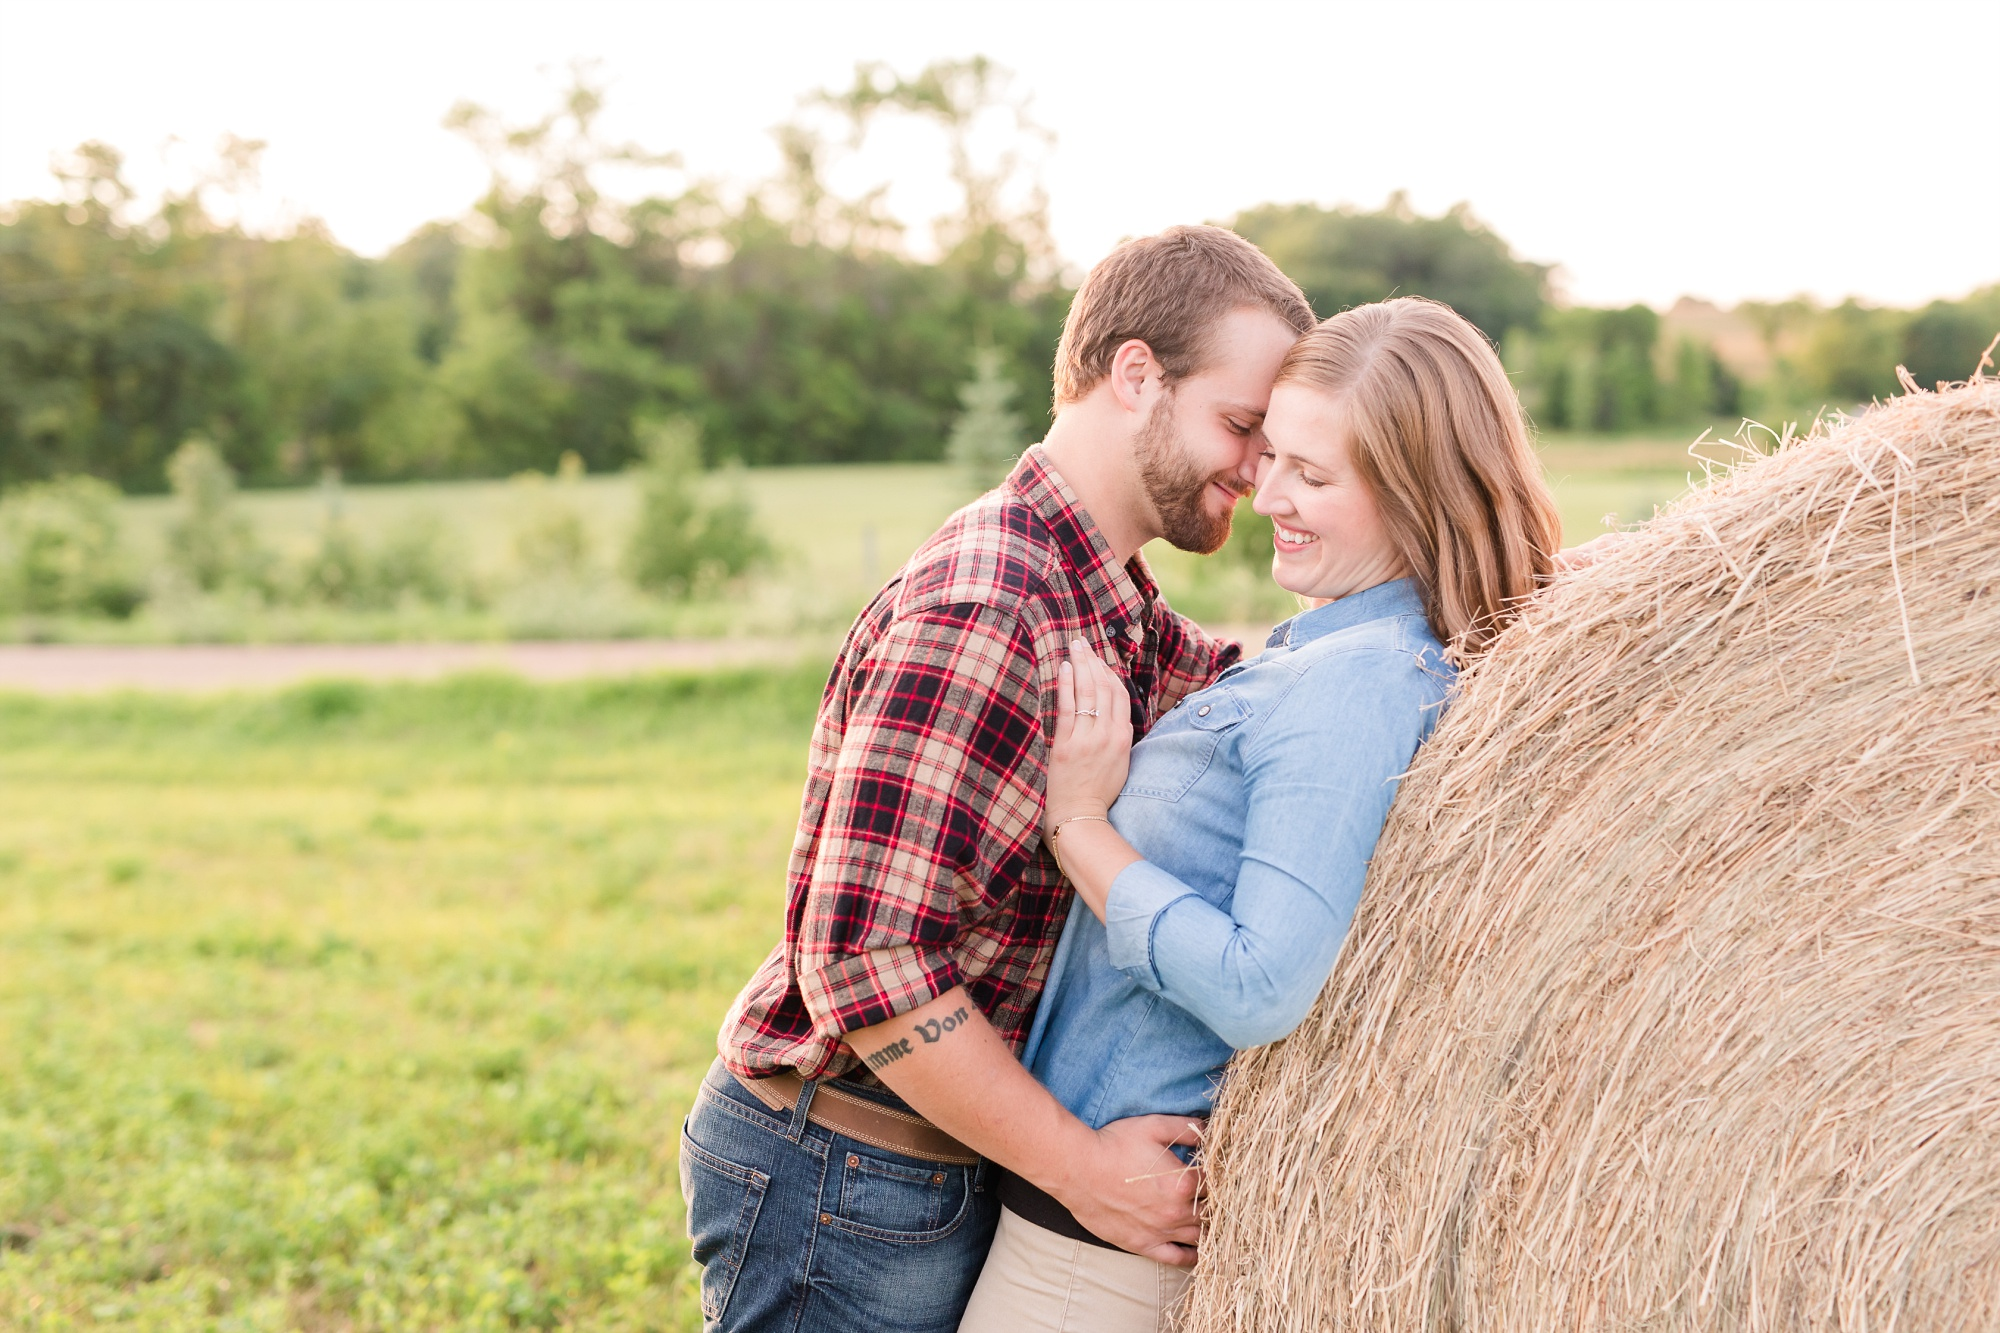 AmberLangerudPhotography_Countryside Engagement Session in Minnesota_3121.jpg